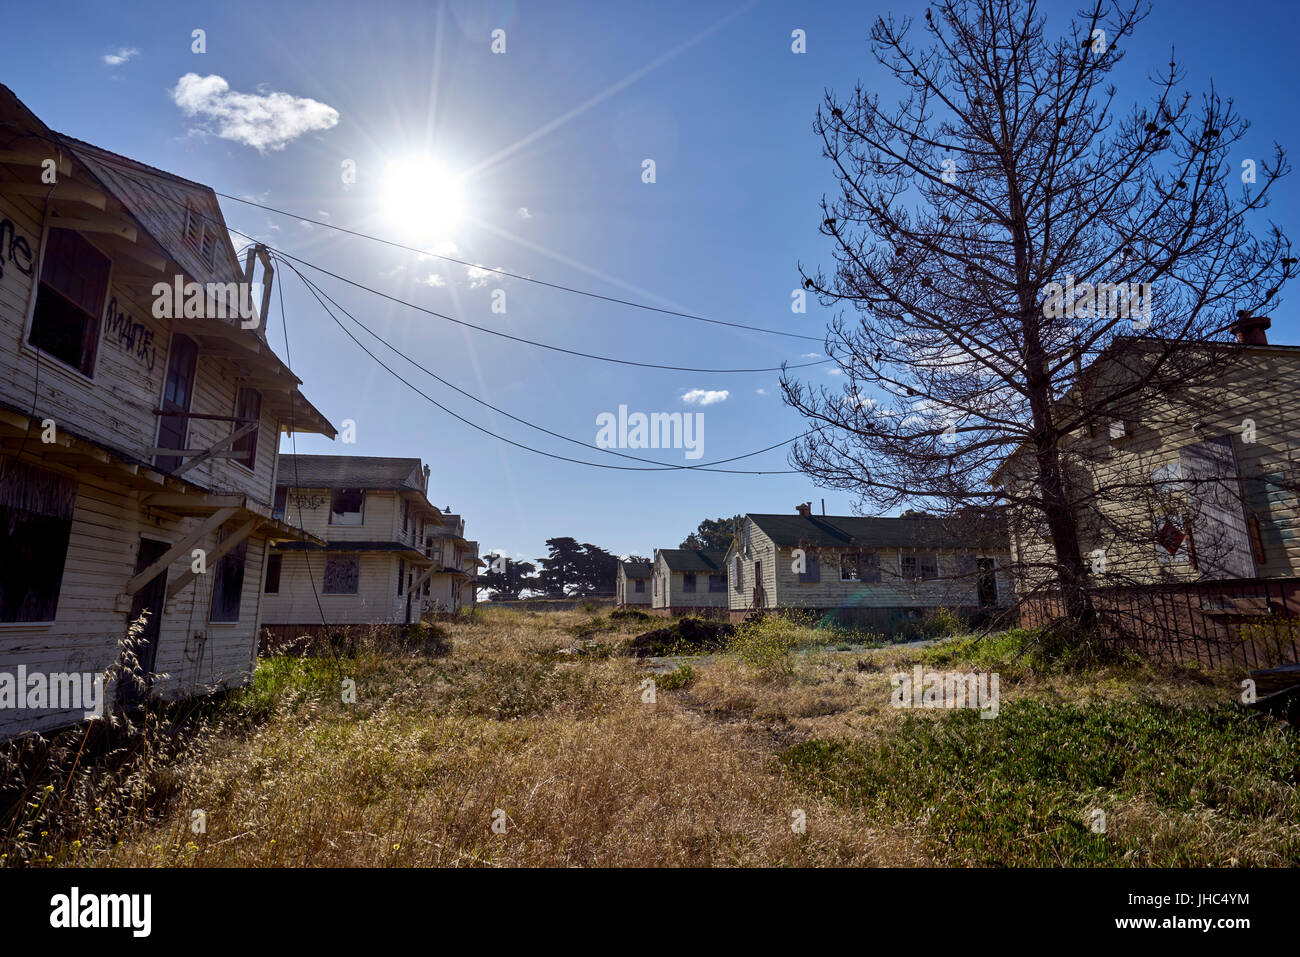 puffy white clouds over abandoned and deserted barracks - Stock Image